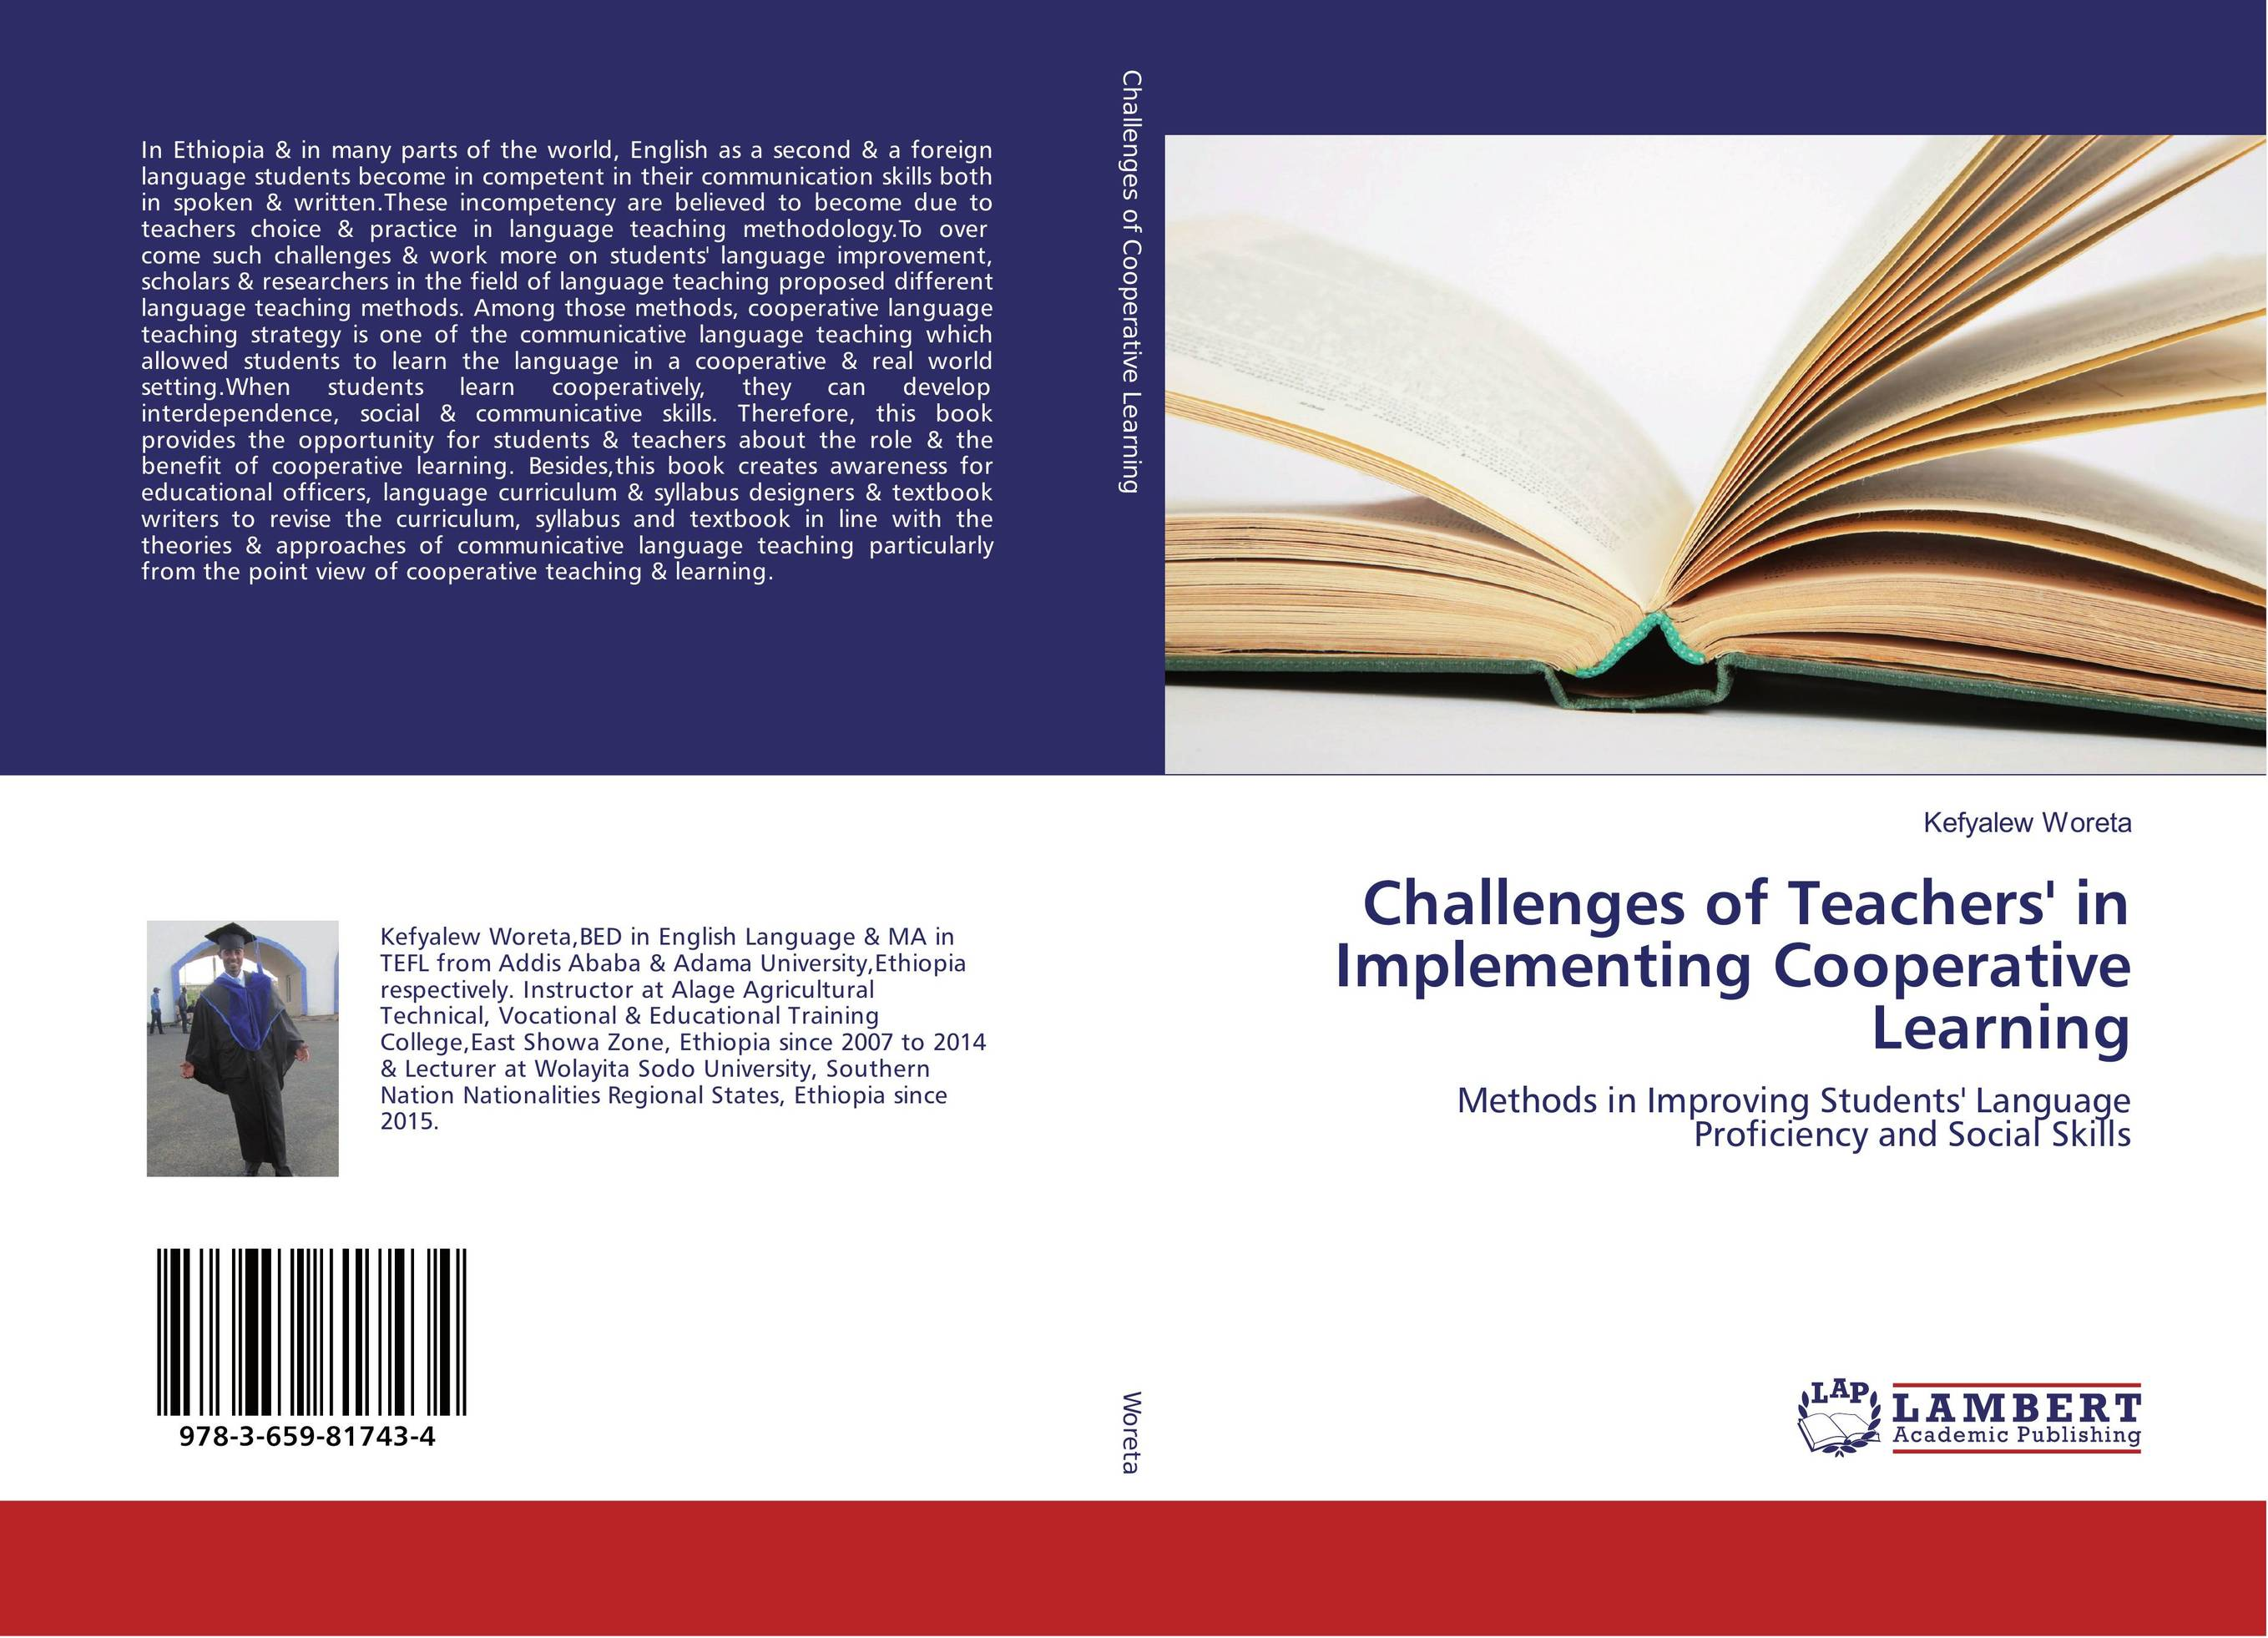 Challenges of Teachers' in Implementing Cooperative Learning silence in foreign language learning